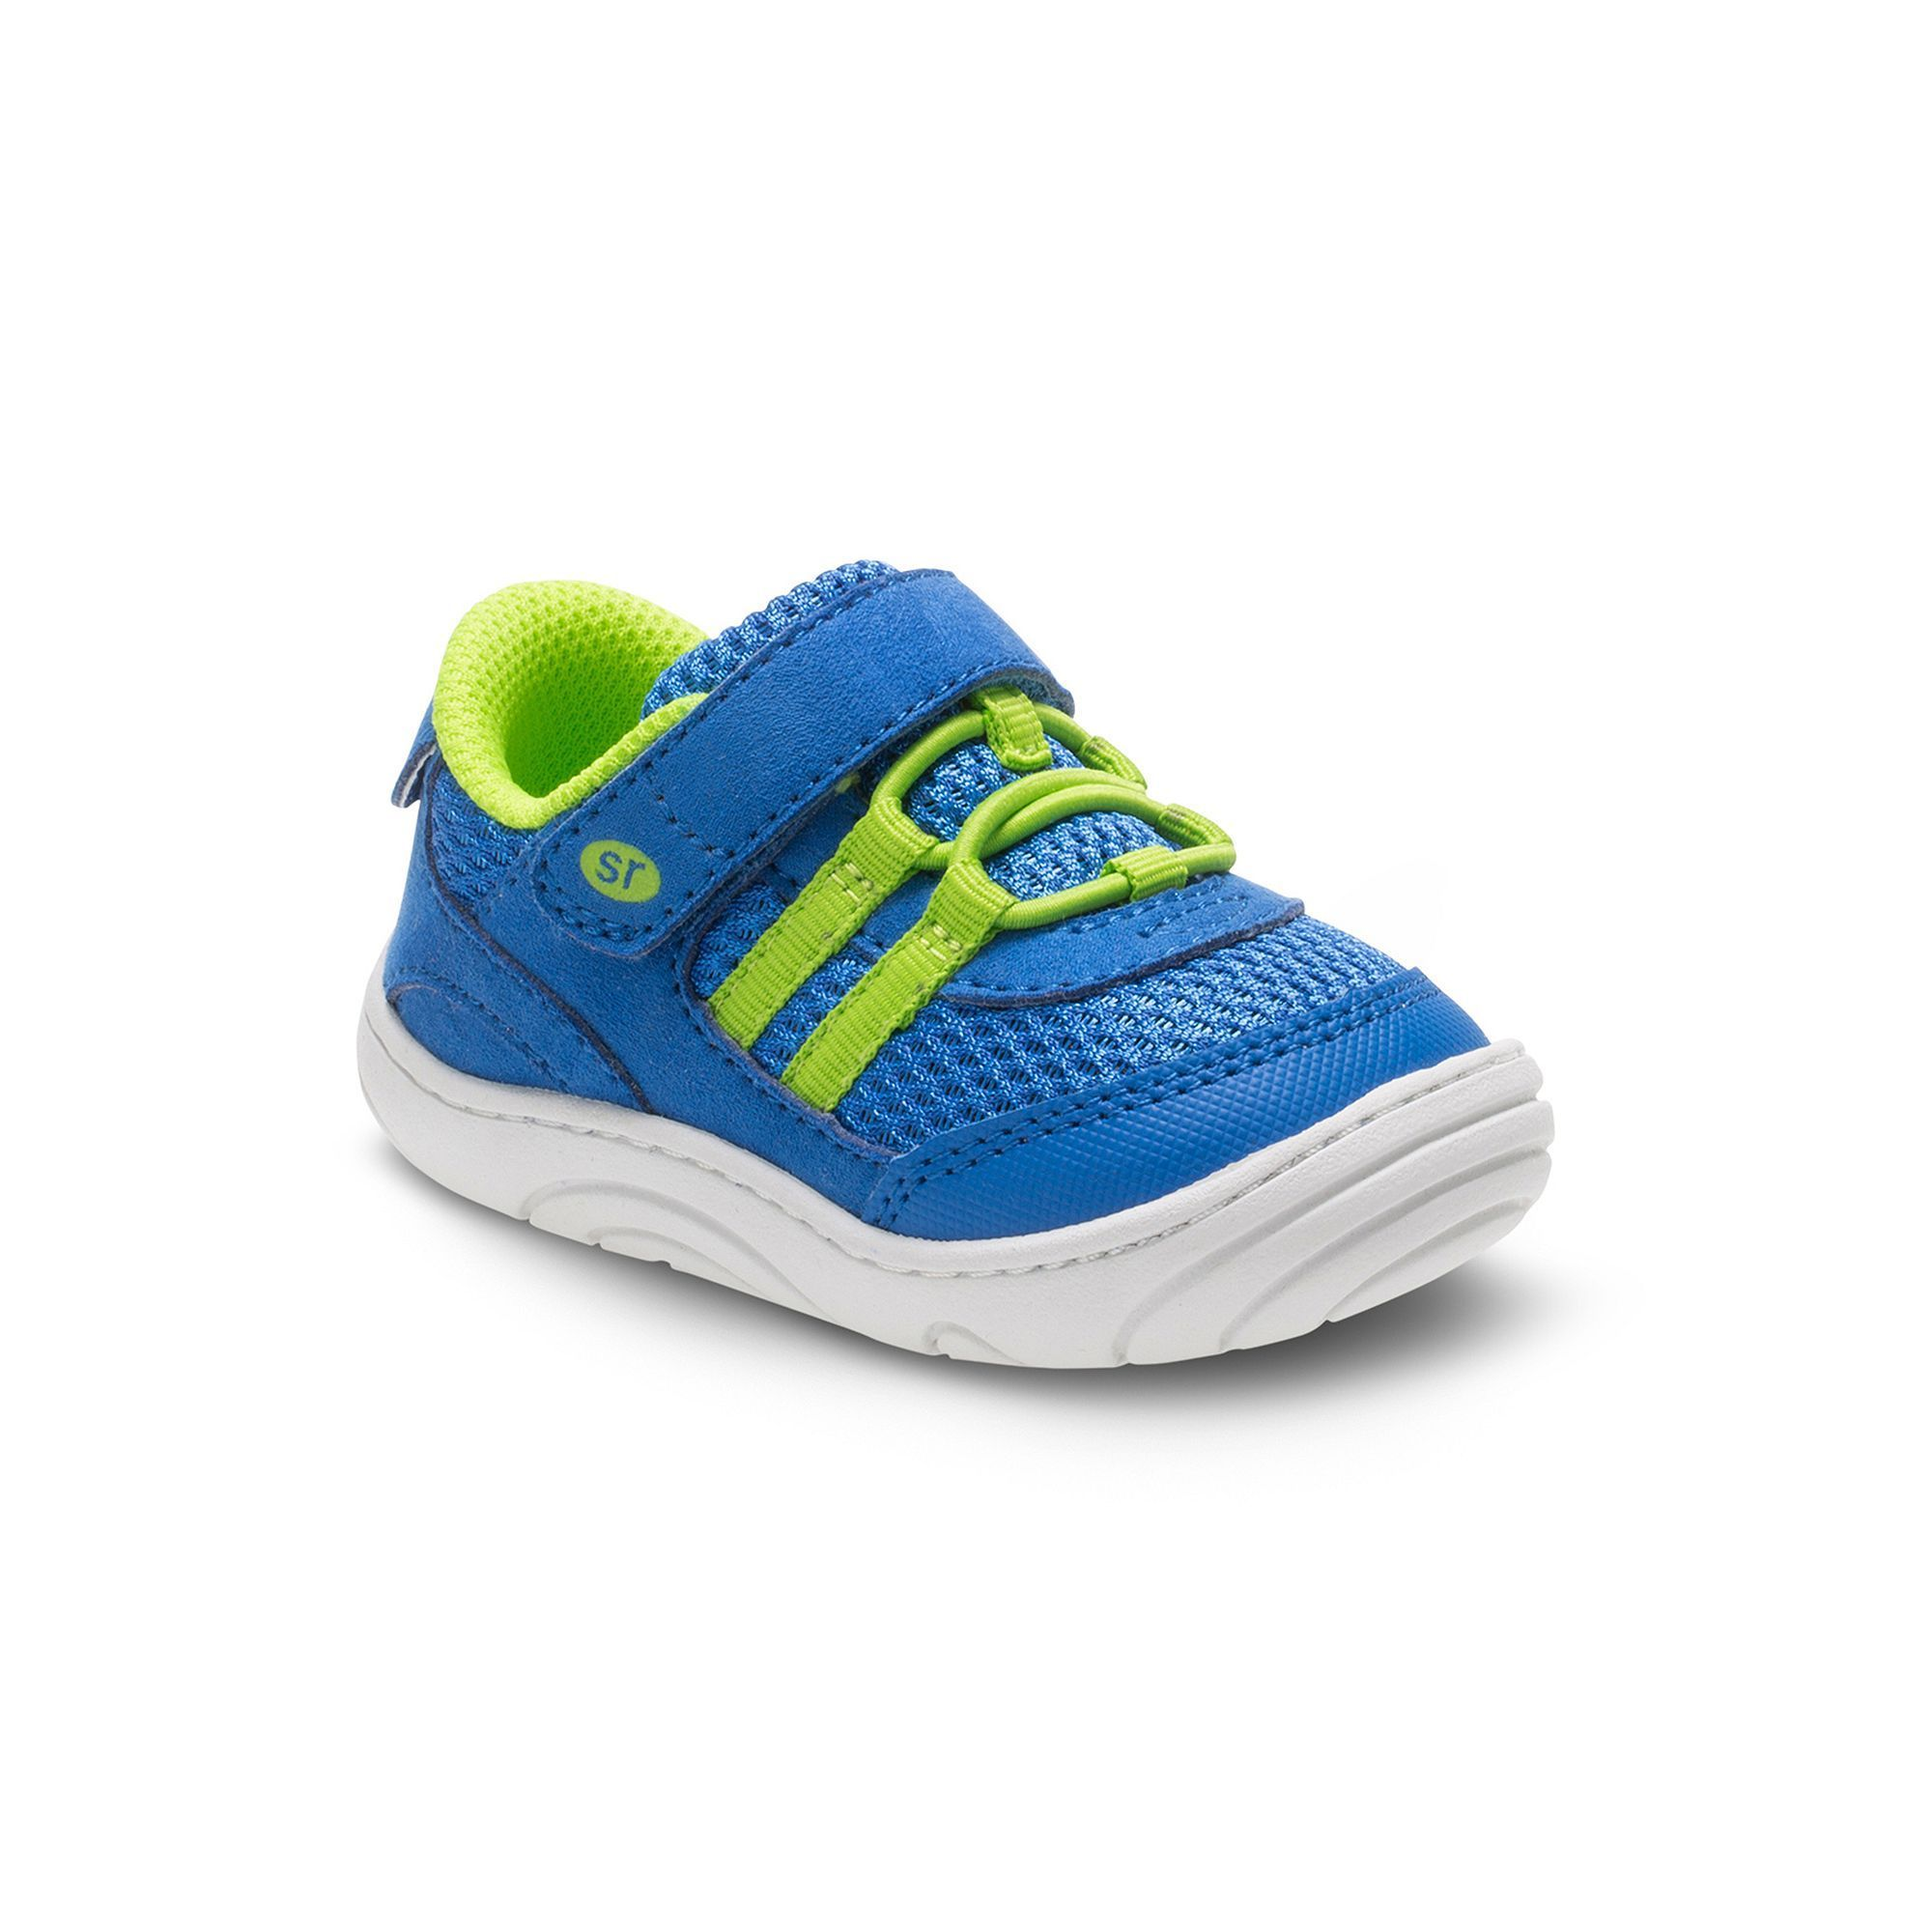 Stride Rite Ivan Baby Boys Sneakers Size 4 T Med Blue